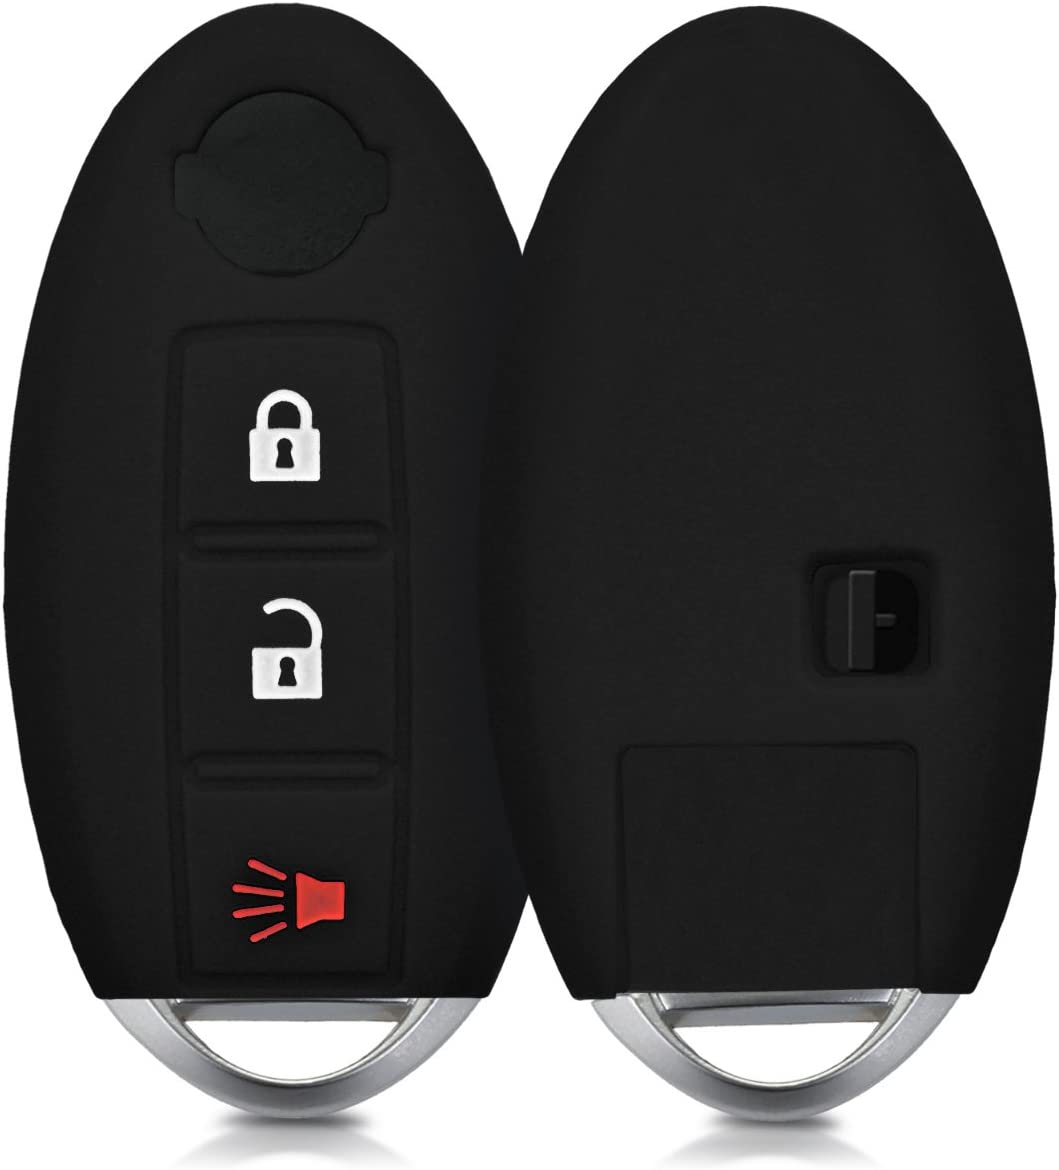 Silicone Protective Key Fob Cover Black kwmobile Car Key Cover Compatible with Nissan 3 Button Car Key